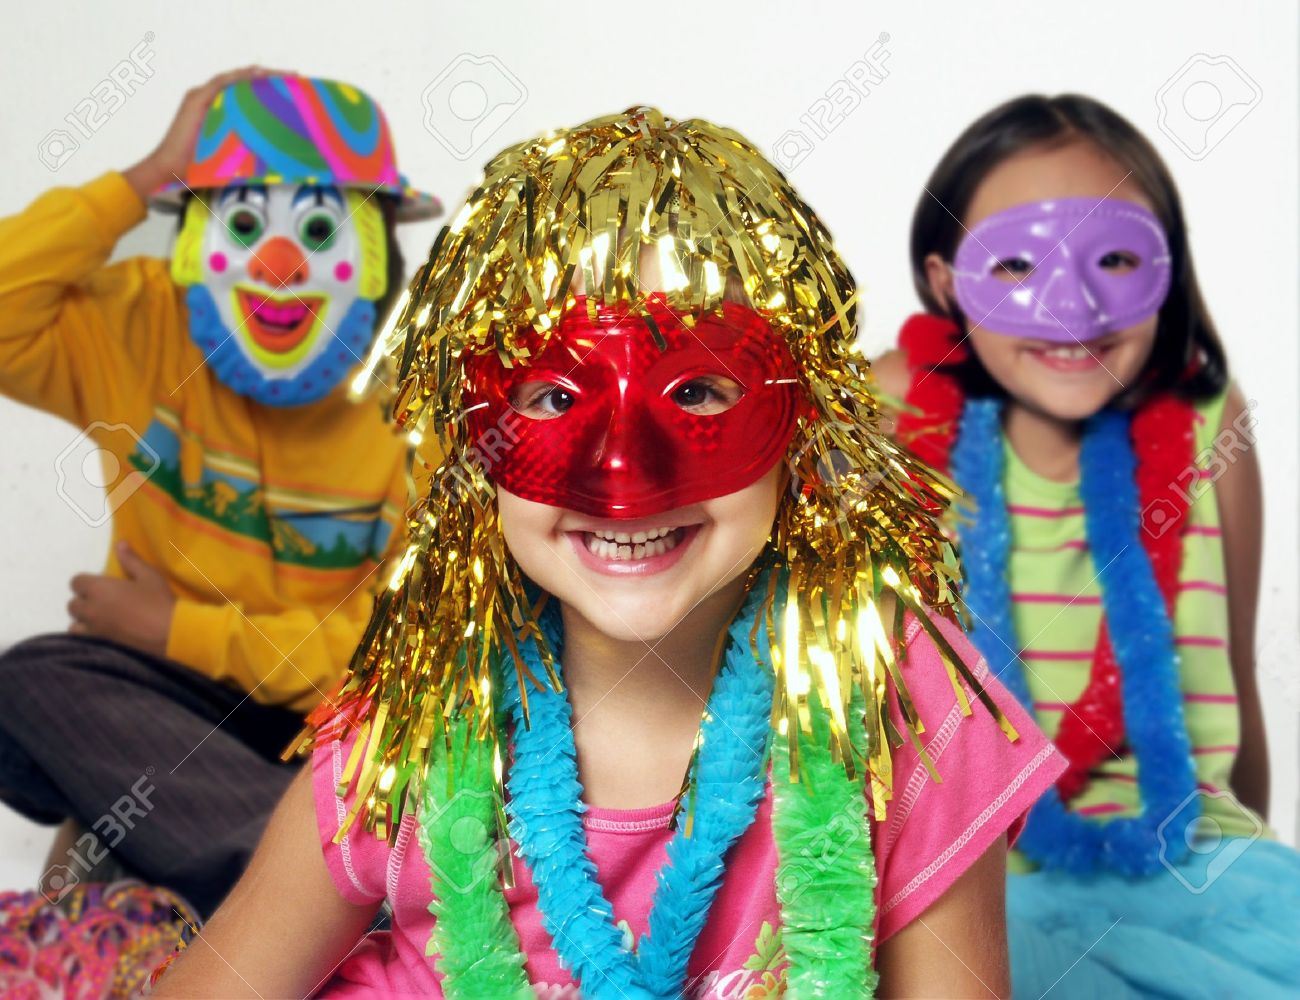 Uncategorized Carnival For Kids three carnival kids having fun together stock photo picture and 22695096